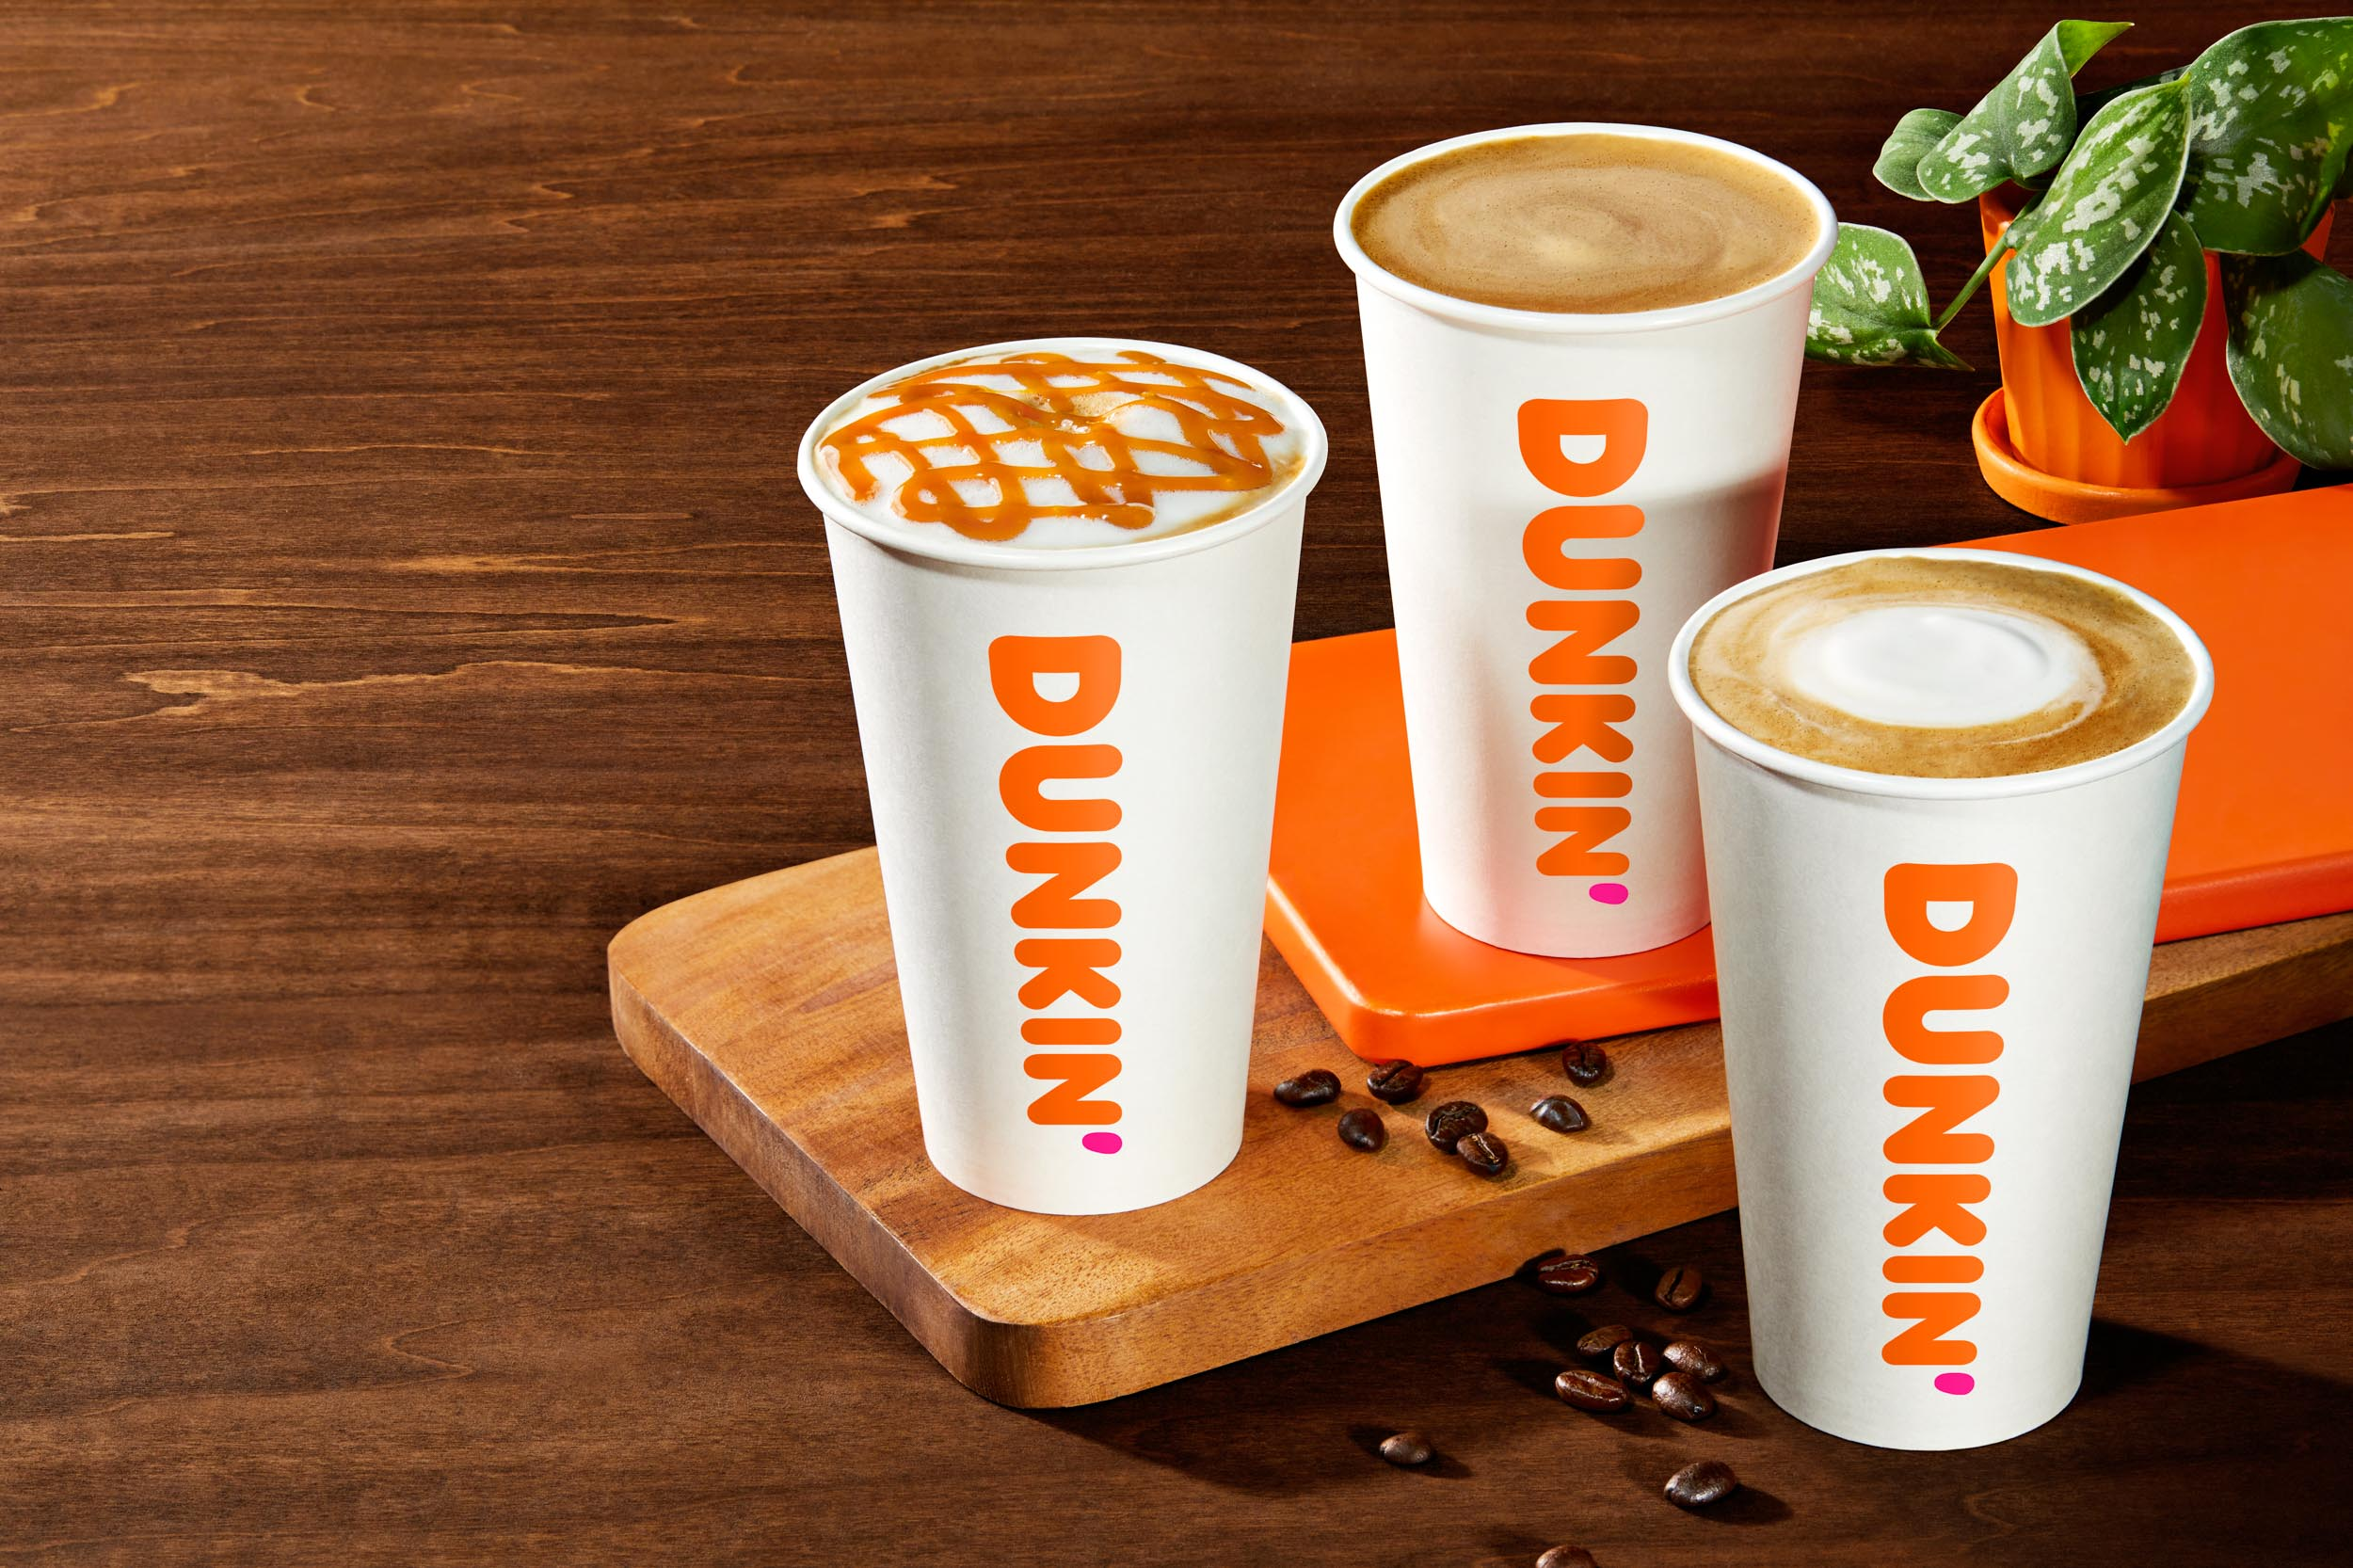 dominic-perri-project-dunkin-international-family-hot